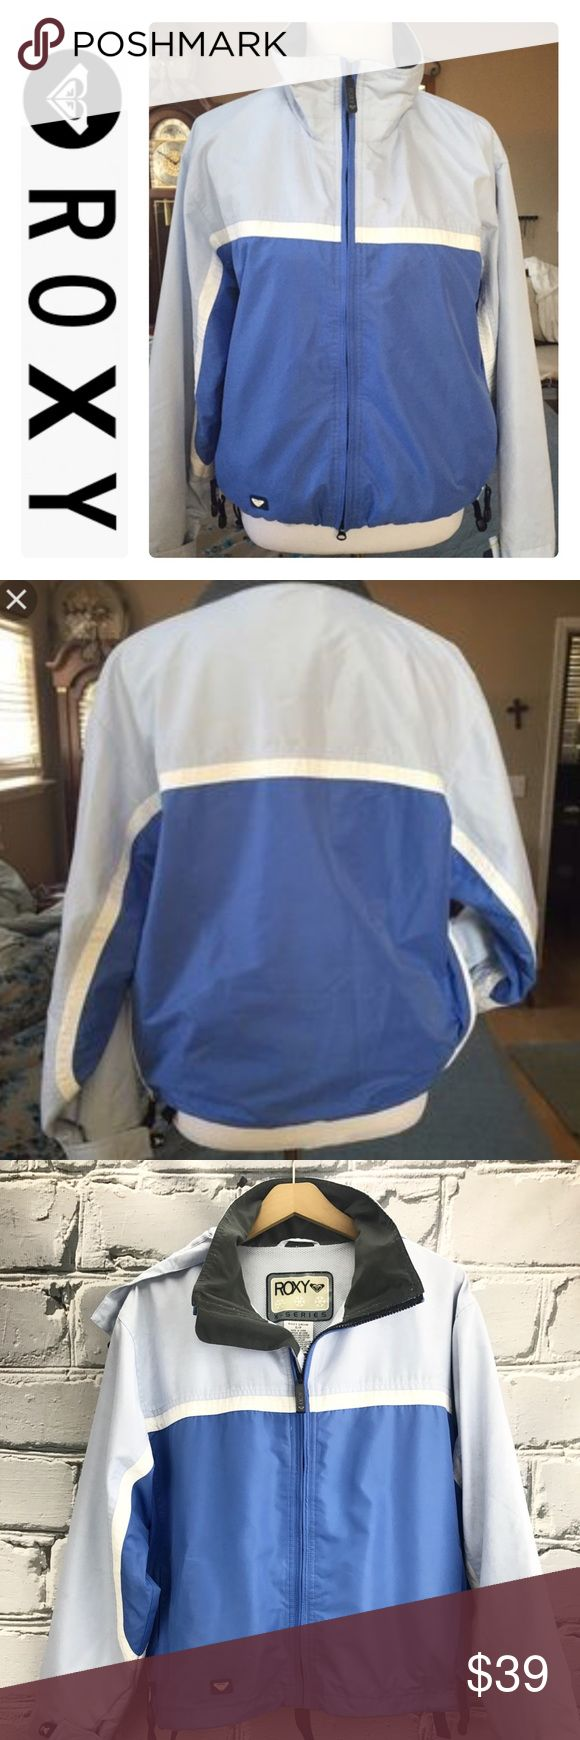 "💕SALE💕Ricky X Series Blue White Snowboard Jacket Fabulous 💕Ricky X Series Blue White Snowboard Jacket 25"" from the top of the shoulder to the bottom 22"" from armpit to armpit Roxy Jackets & Coats"